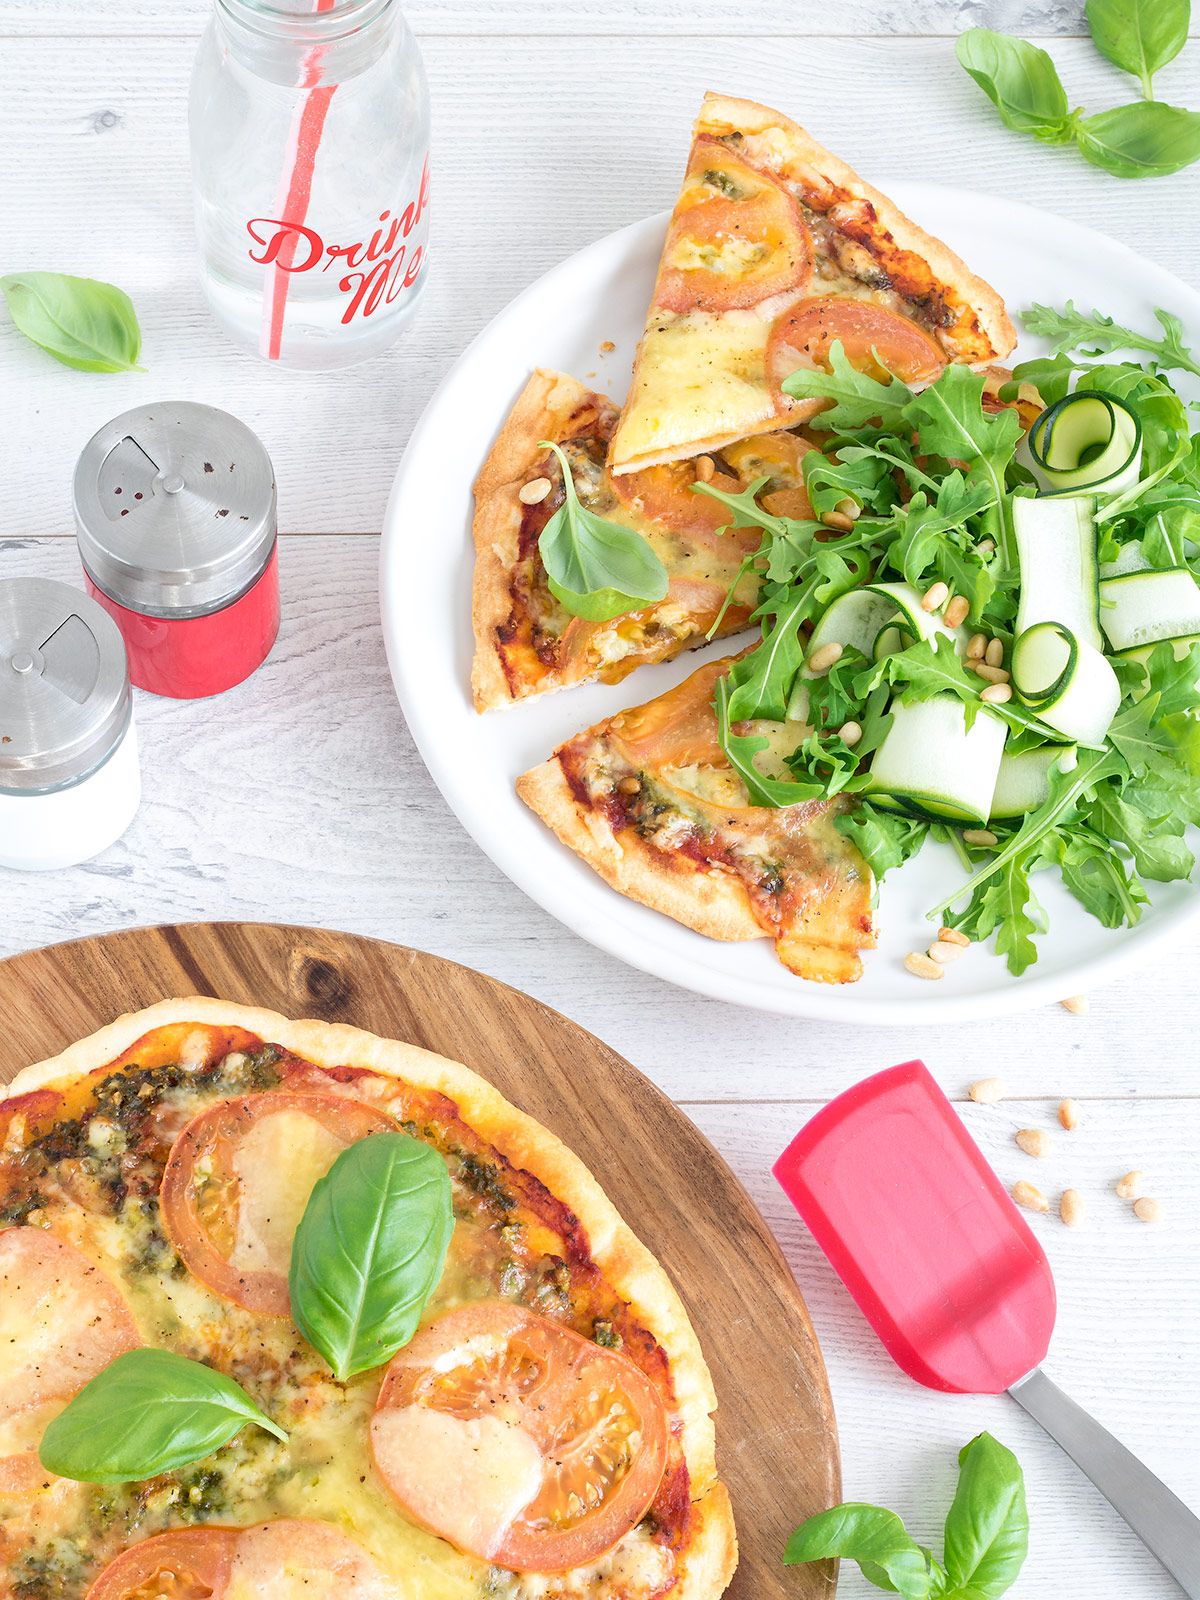 Anyone else love a good, simple Margarita pizza? Tomato, cheese, basil - you can't go wrong!